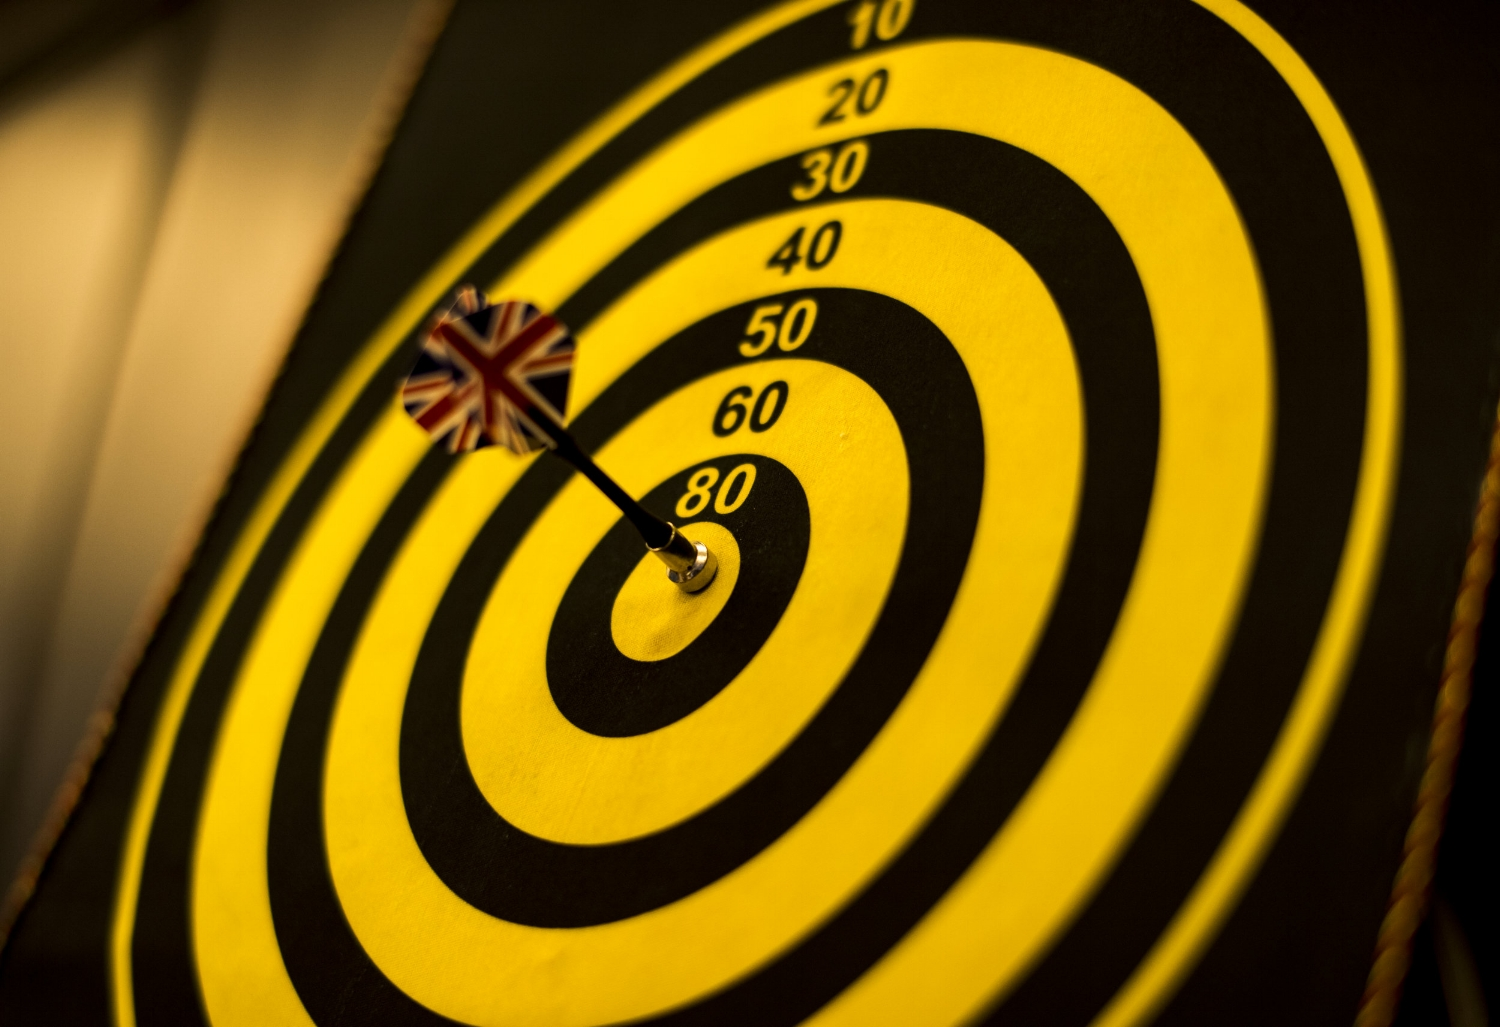 TARGET - Using advanced targeting and retargeting strategies we drive highly qualified traffic to your sales funnel.